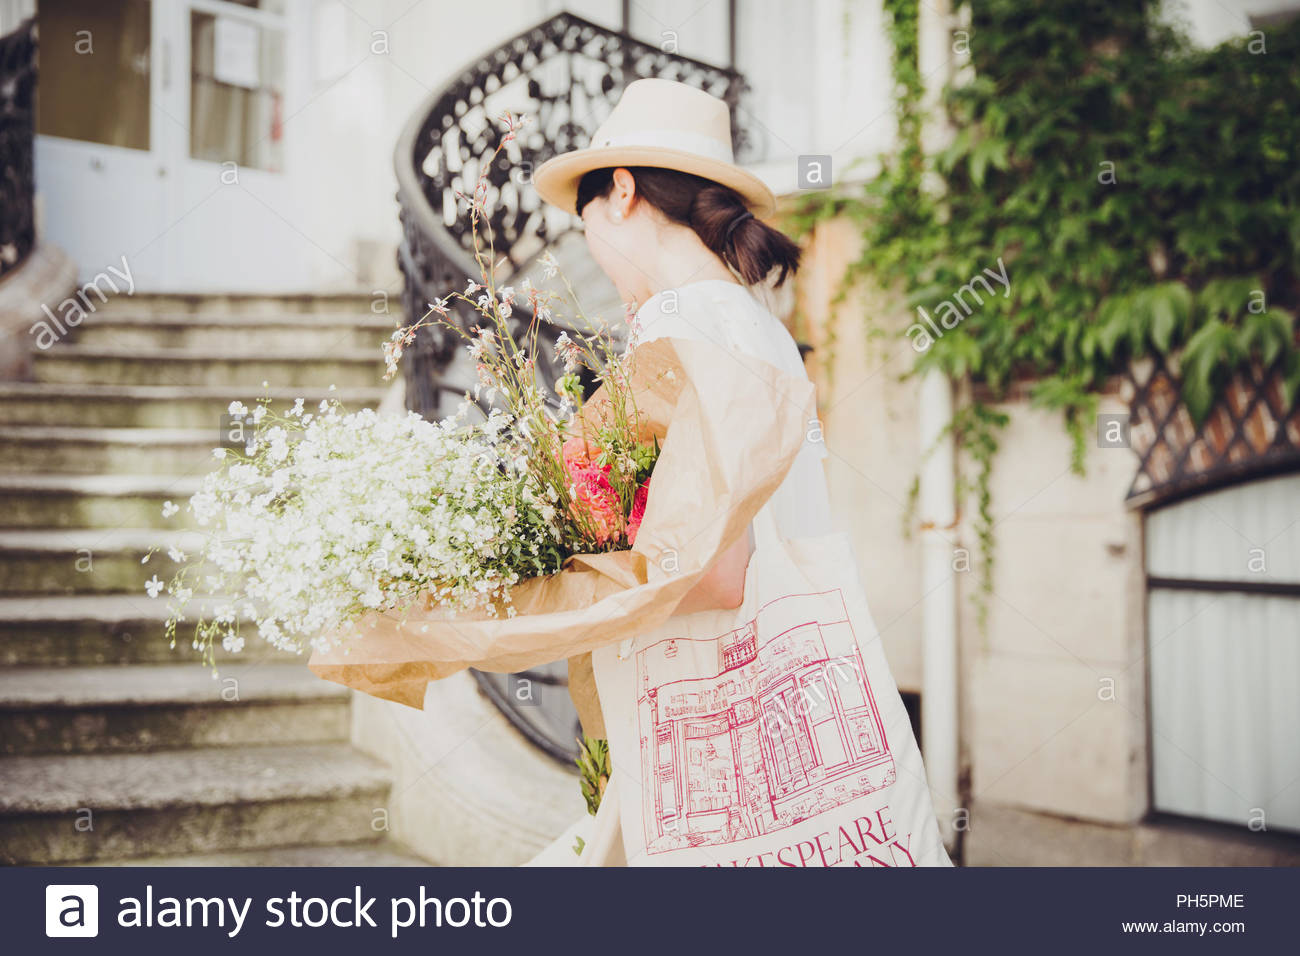 Young woman with bouquet of flowers by stone steps - Stock Image